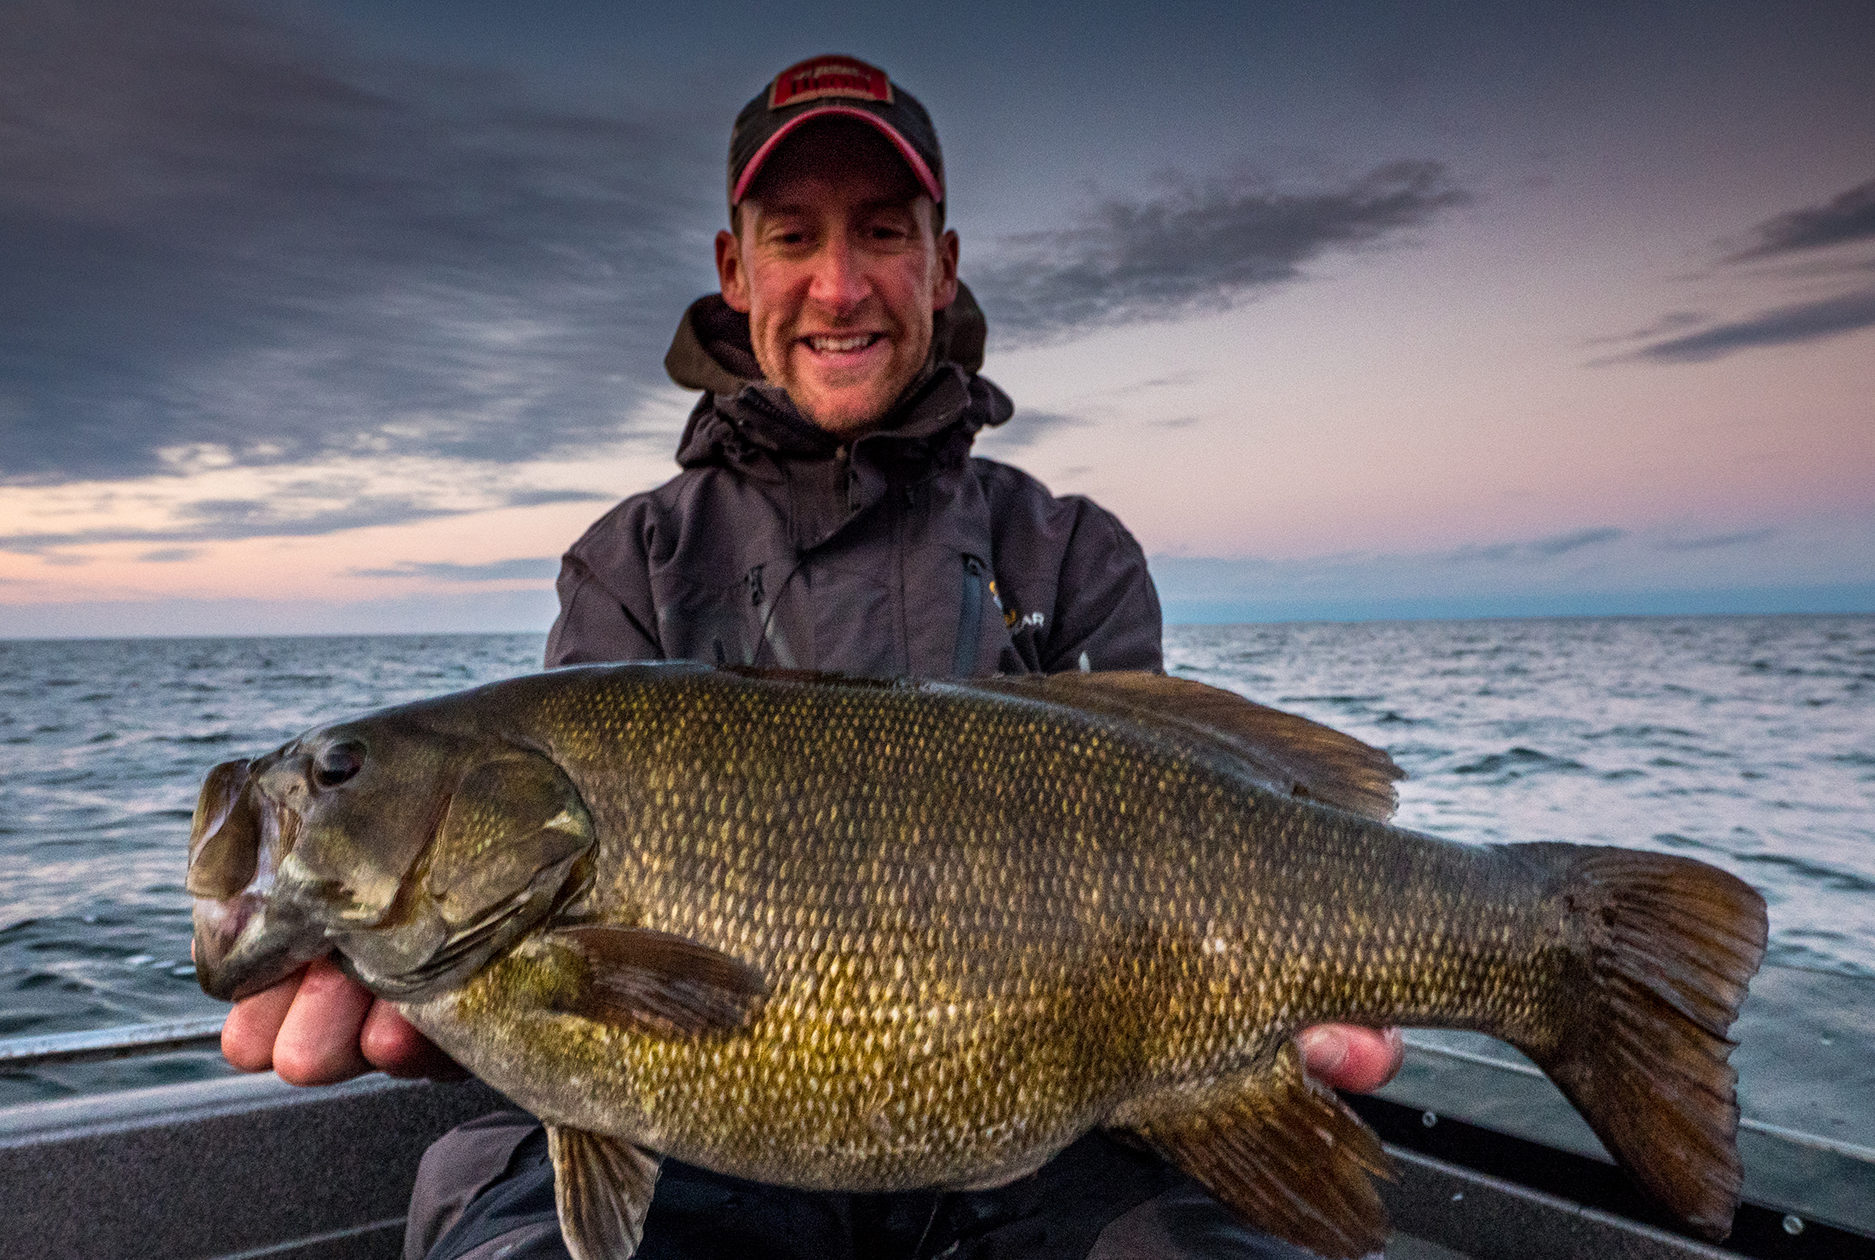 Minnesota bass fishing guide